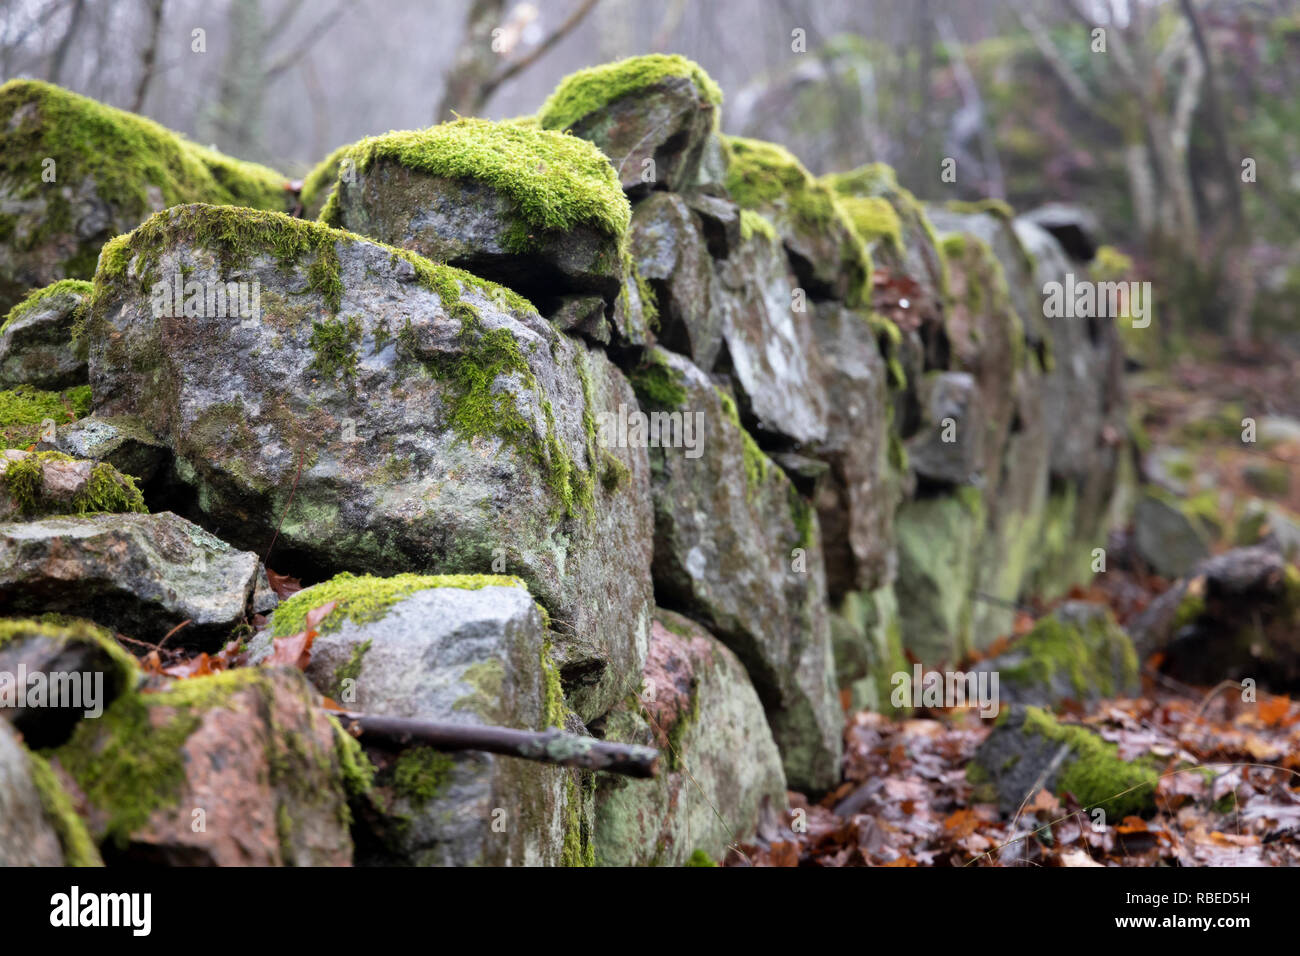 moss covered old crumbled stone fence - Stock Image